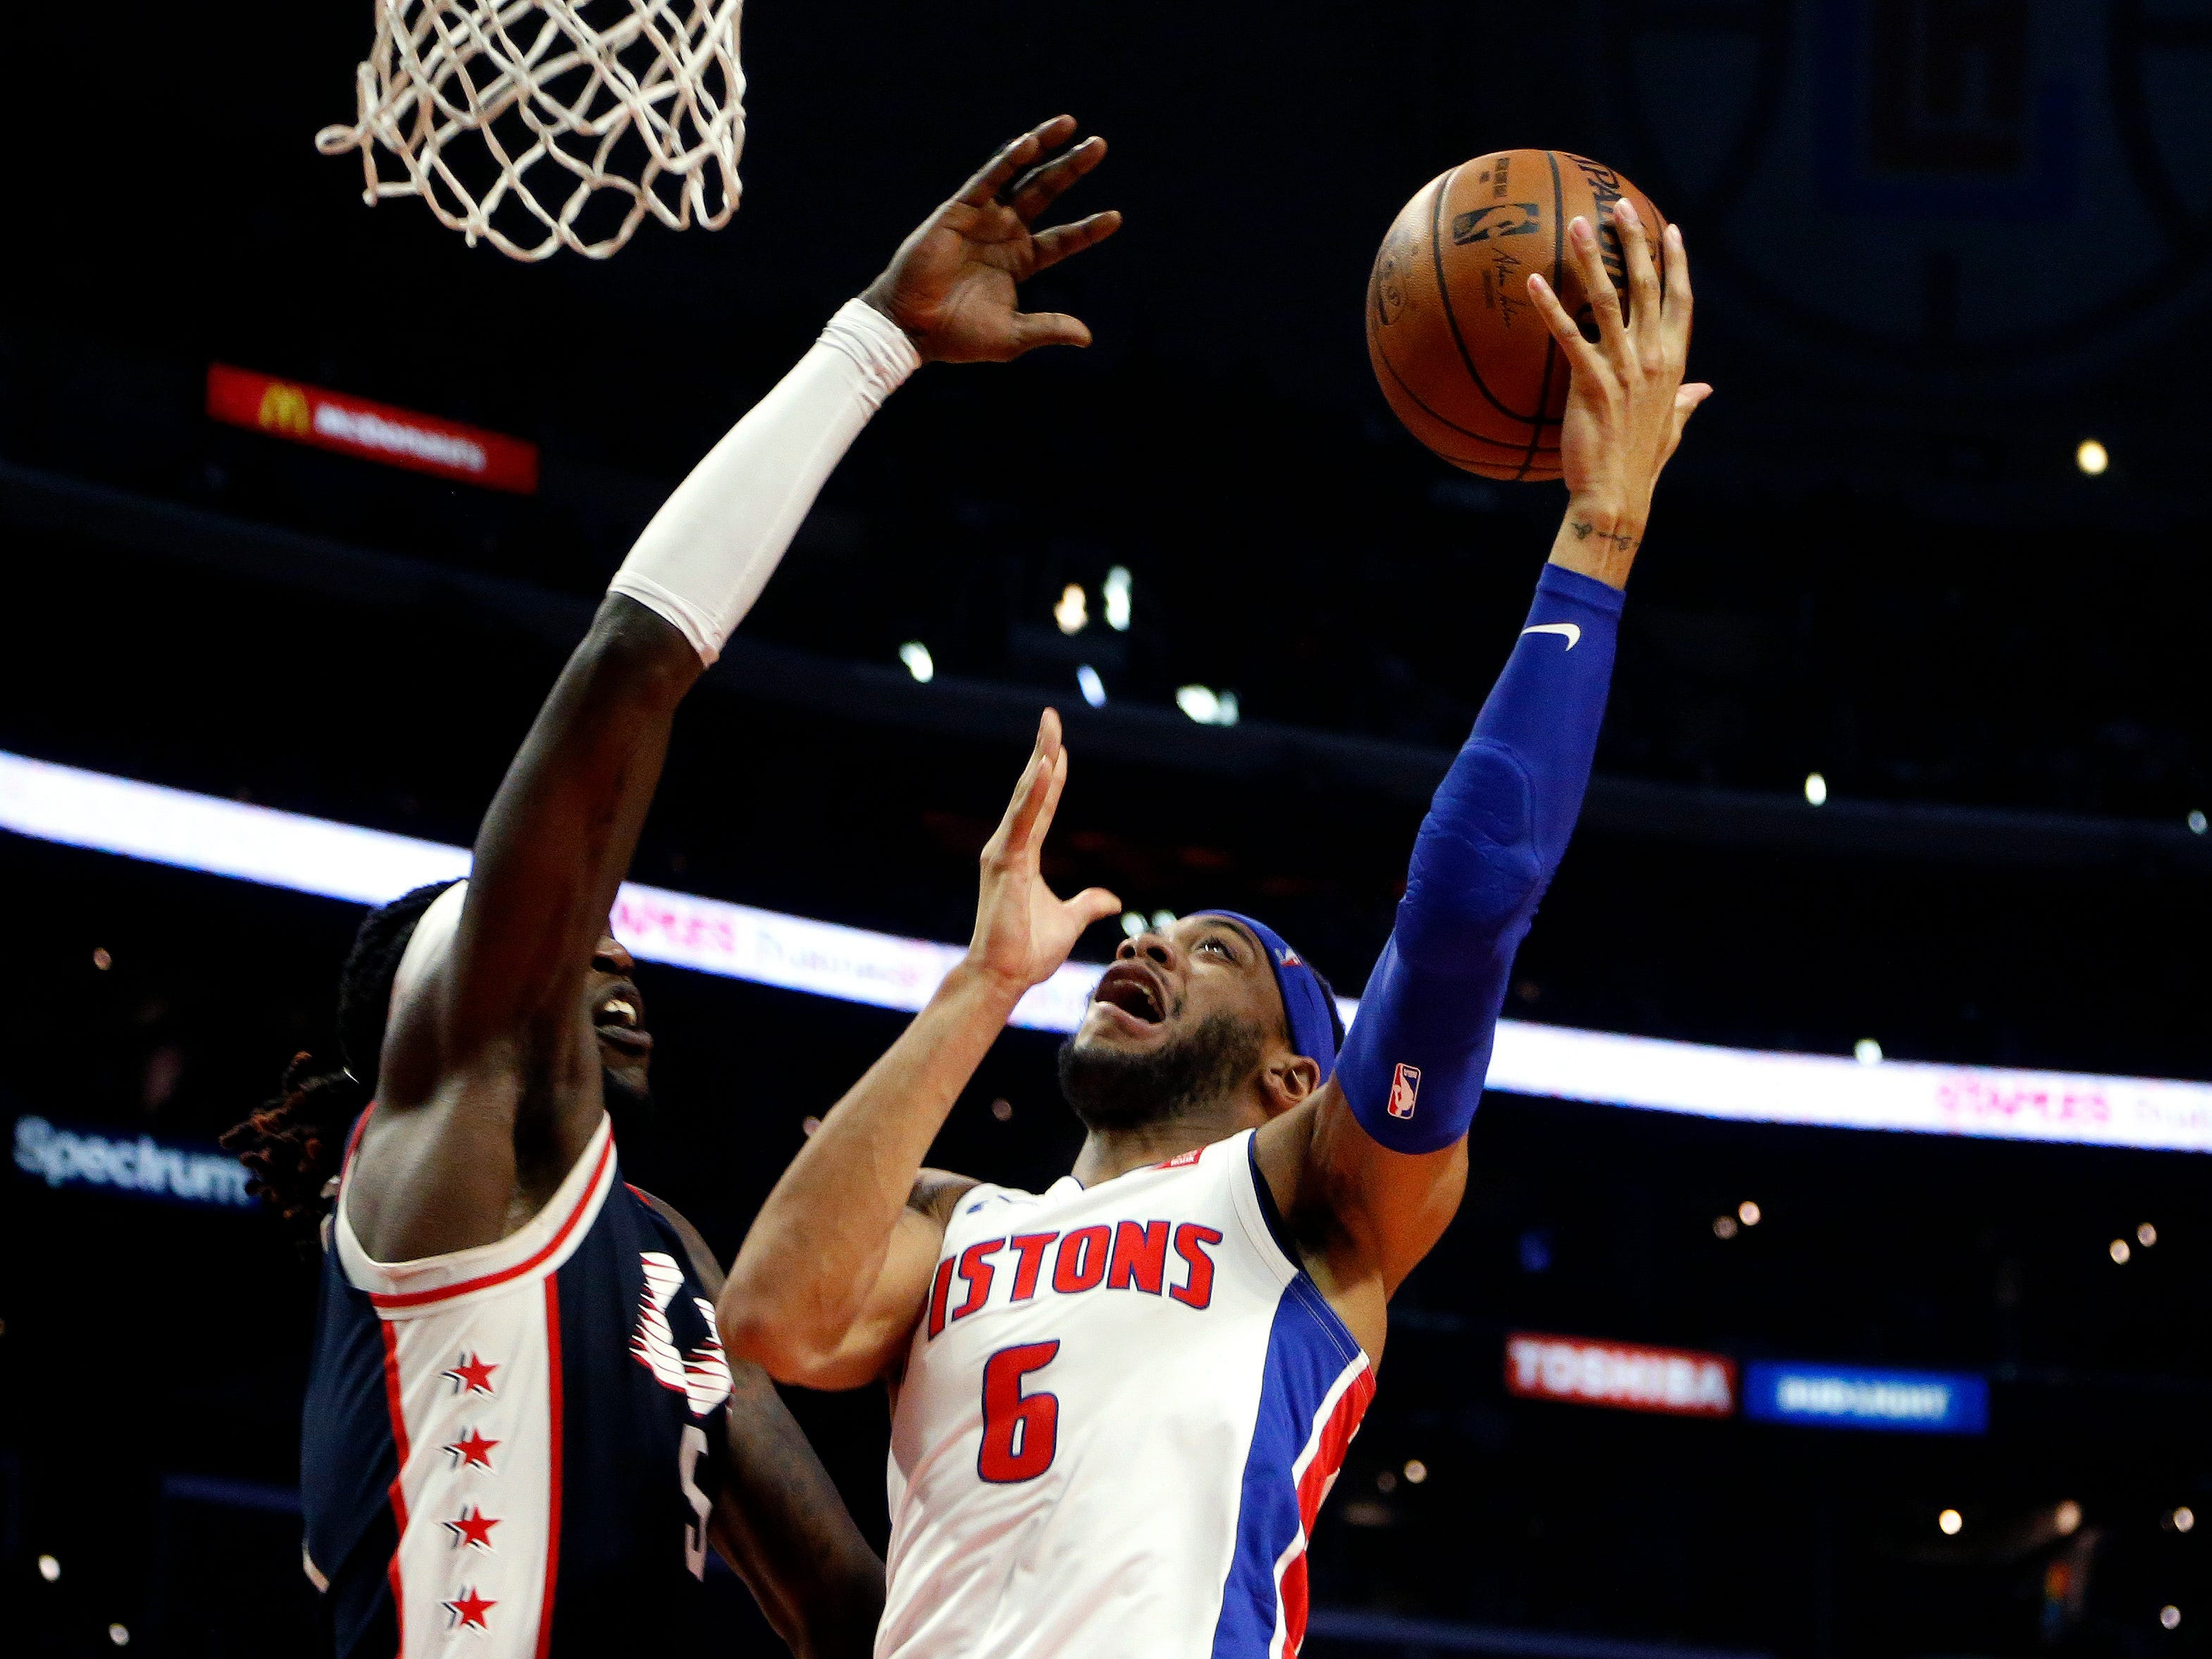 Detroit Pistons' Bruce Brown is defended by Los Angeles Clippers' Montrezl Harrell in the second half Saturday, Jan. 12, 2019, in Los Angeles.